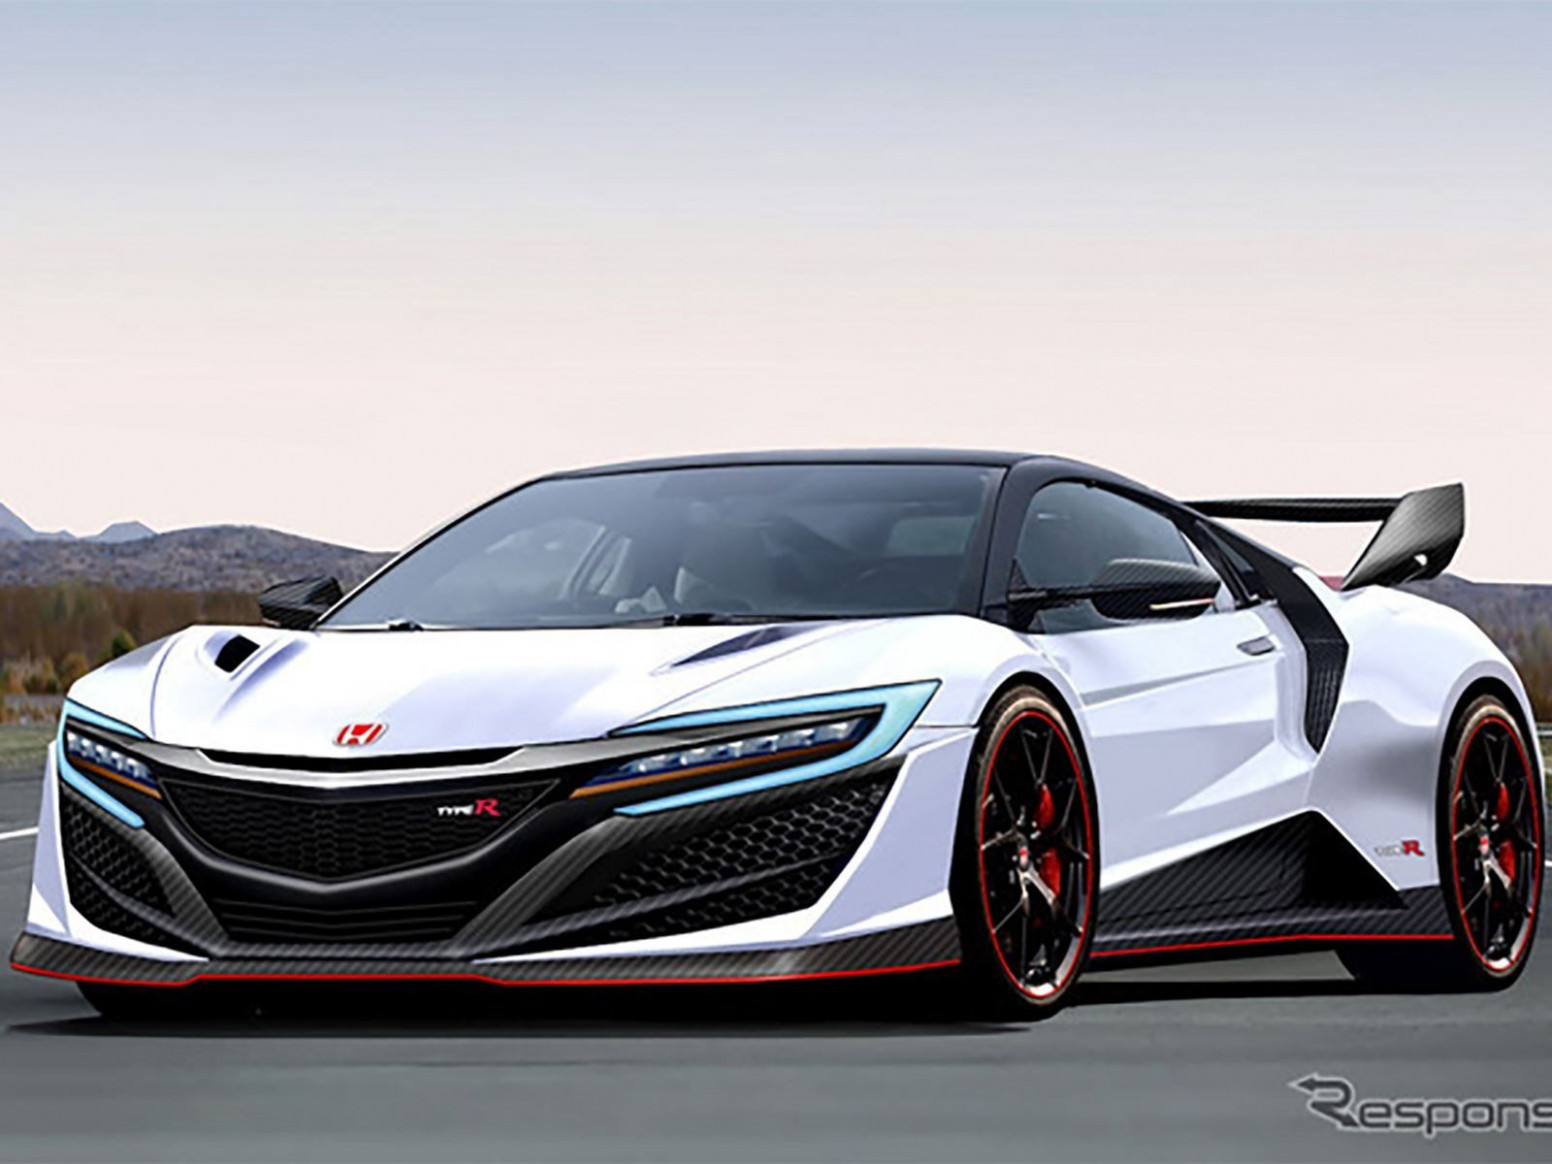 honda nsx 12 price philippines Release Date, Price and Review ..